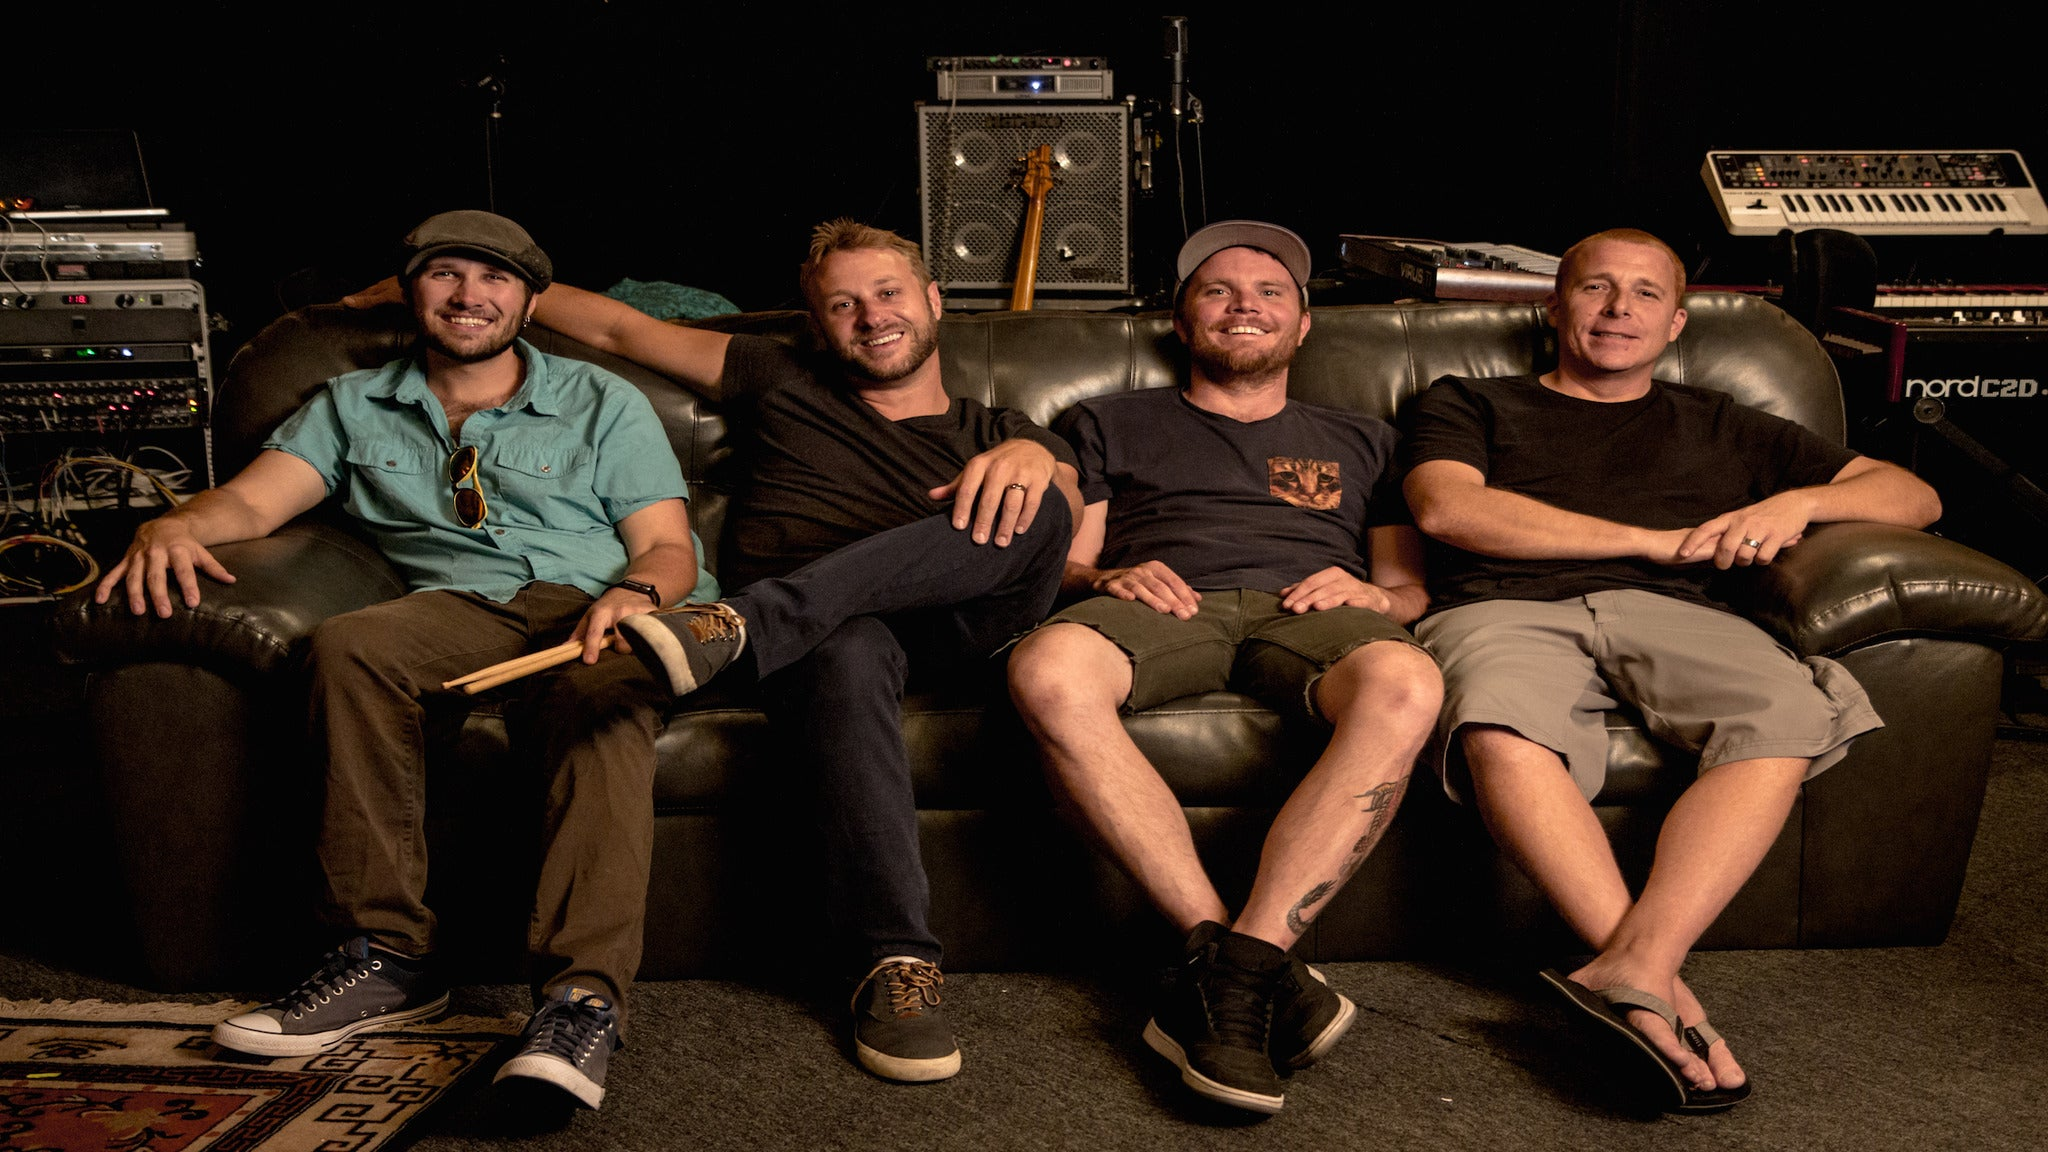 SORRY, THIS EVENT IS NO LONGER ACTIVE<br>Spafford at Teragram Ballroom - Los Angeles, CA 90017